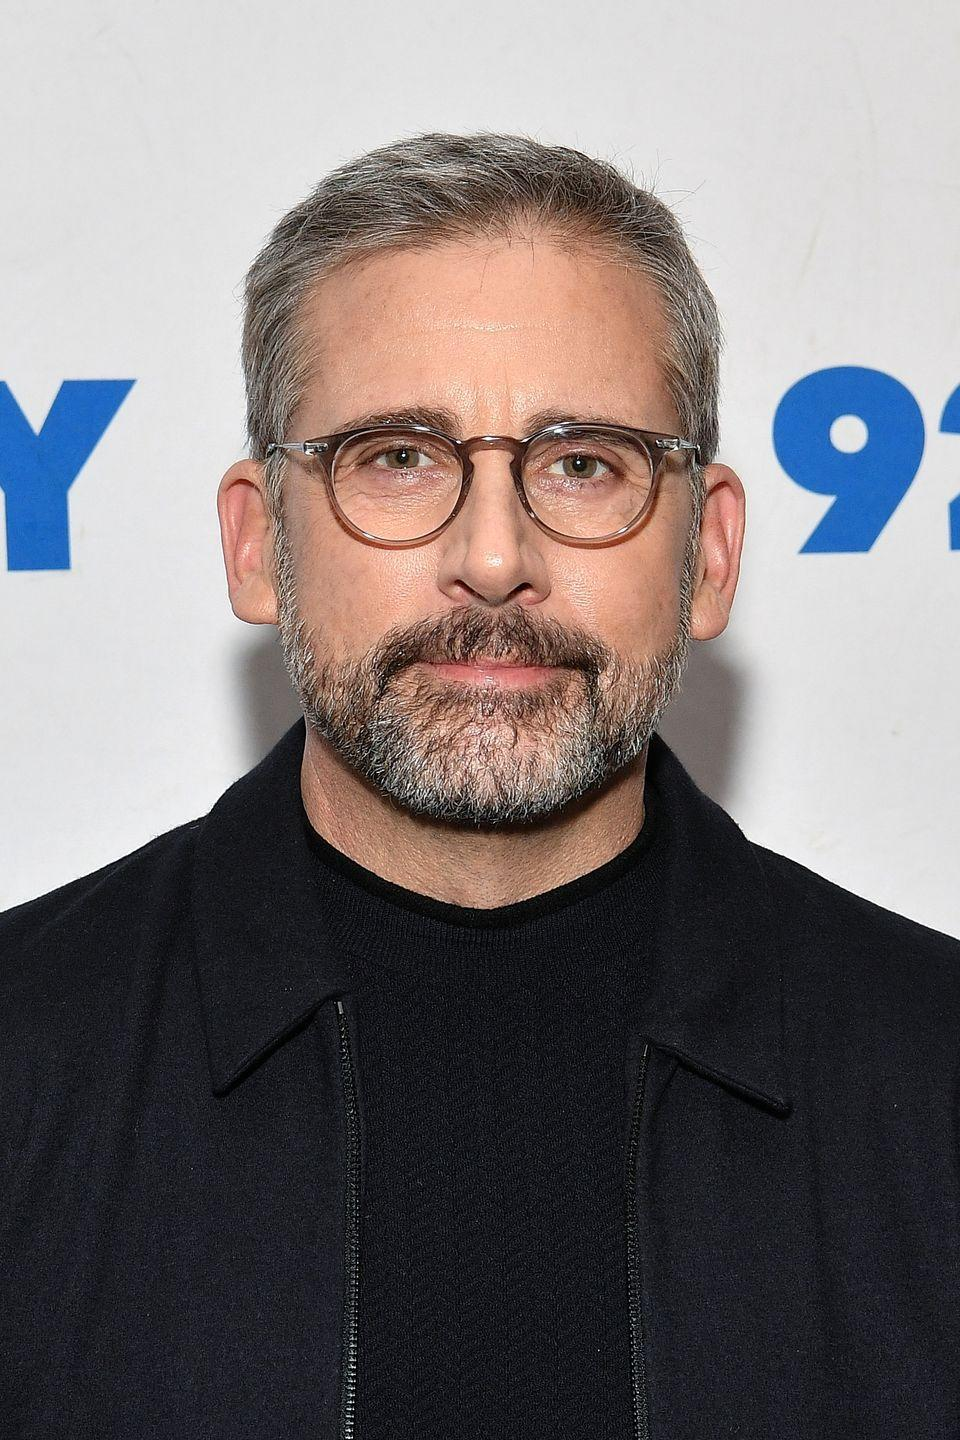 <p>Since leaving Dunder Mifflin behind, Carell matured in both his career and appearance. The actor has taken on more serious movie roles as of late and has also started sporting a gray beard and hair combo. </p>